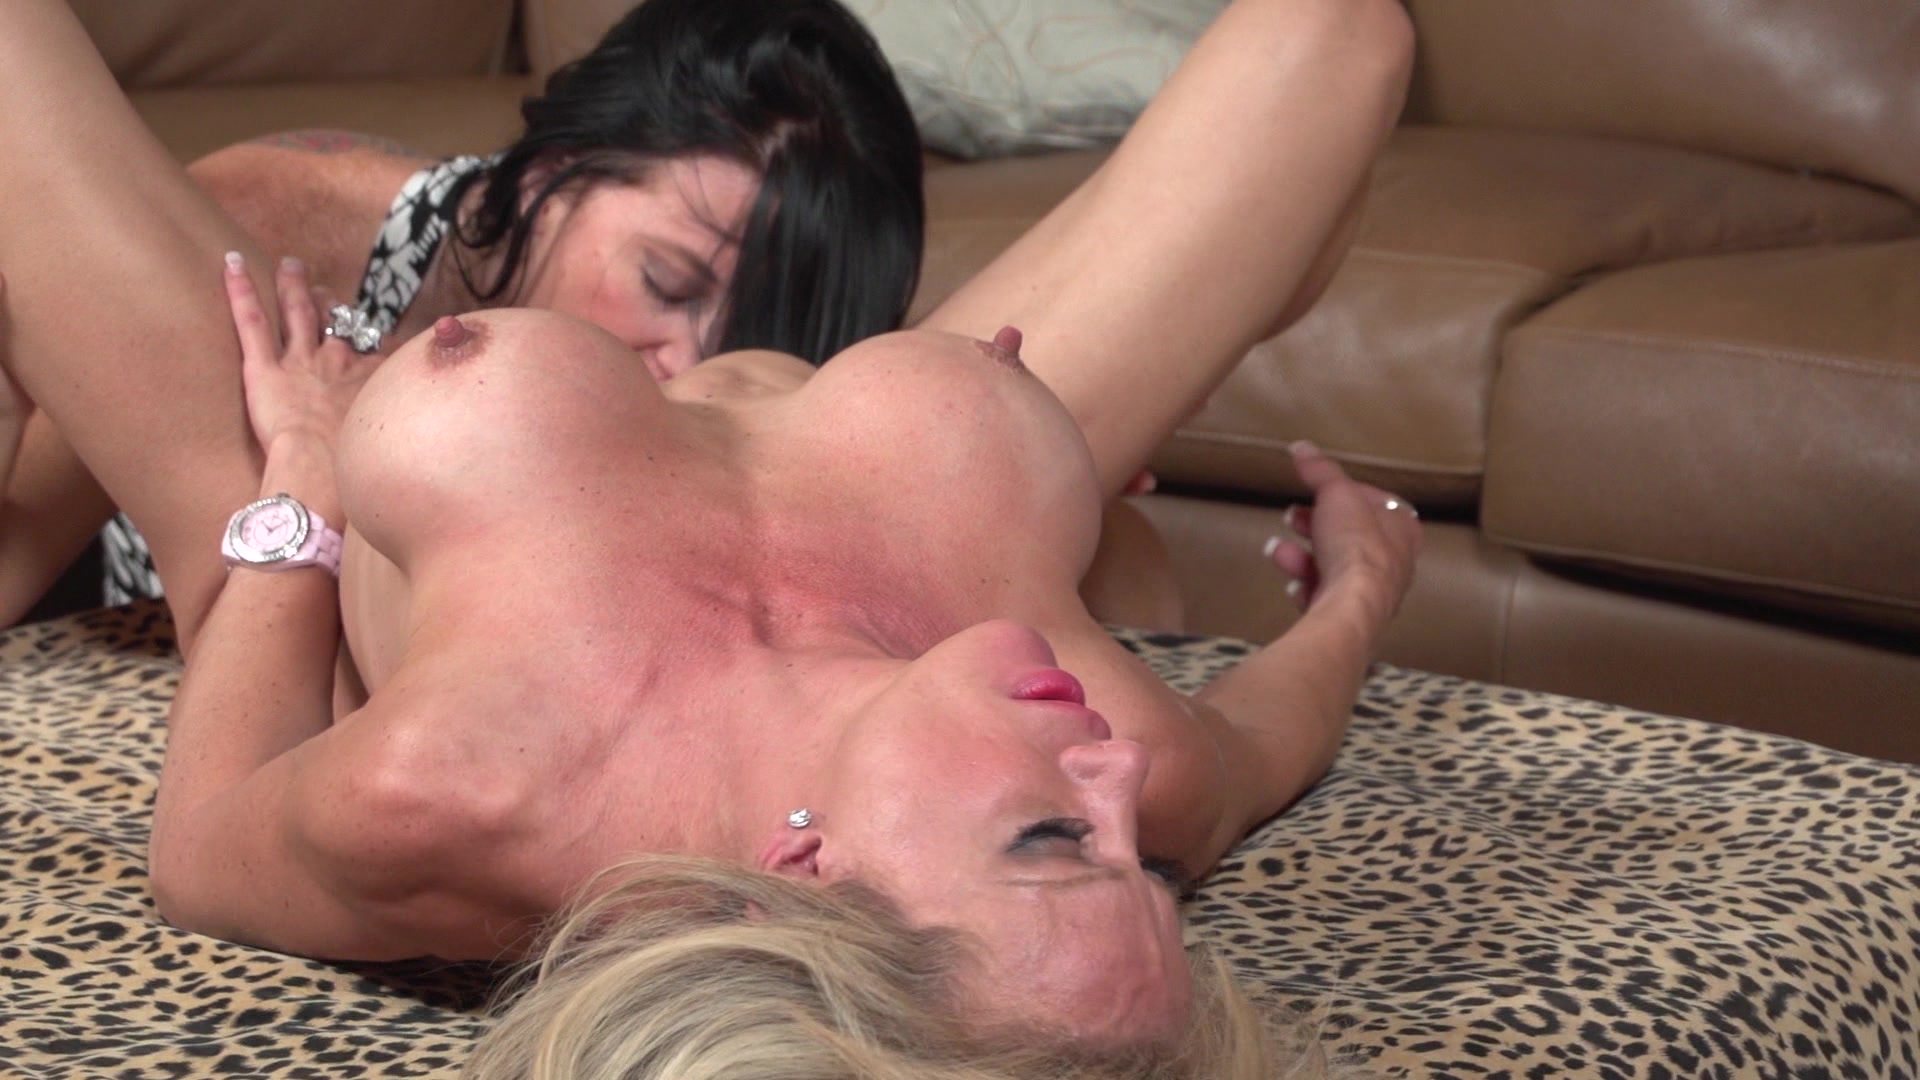 Two blonde lesbians having fun screwing each other with dildos 2